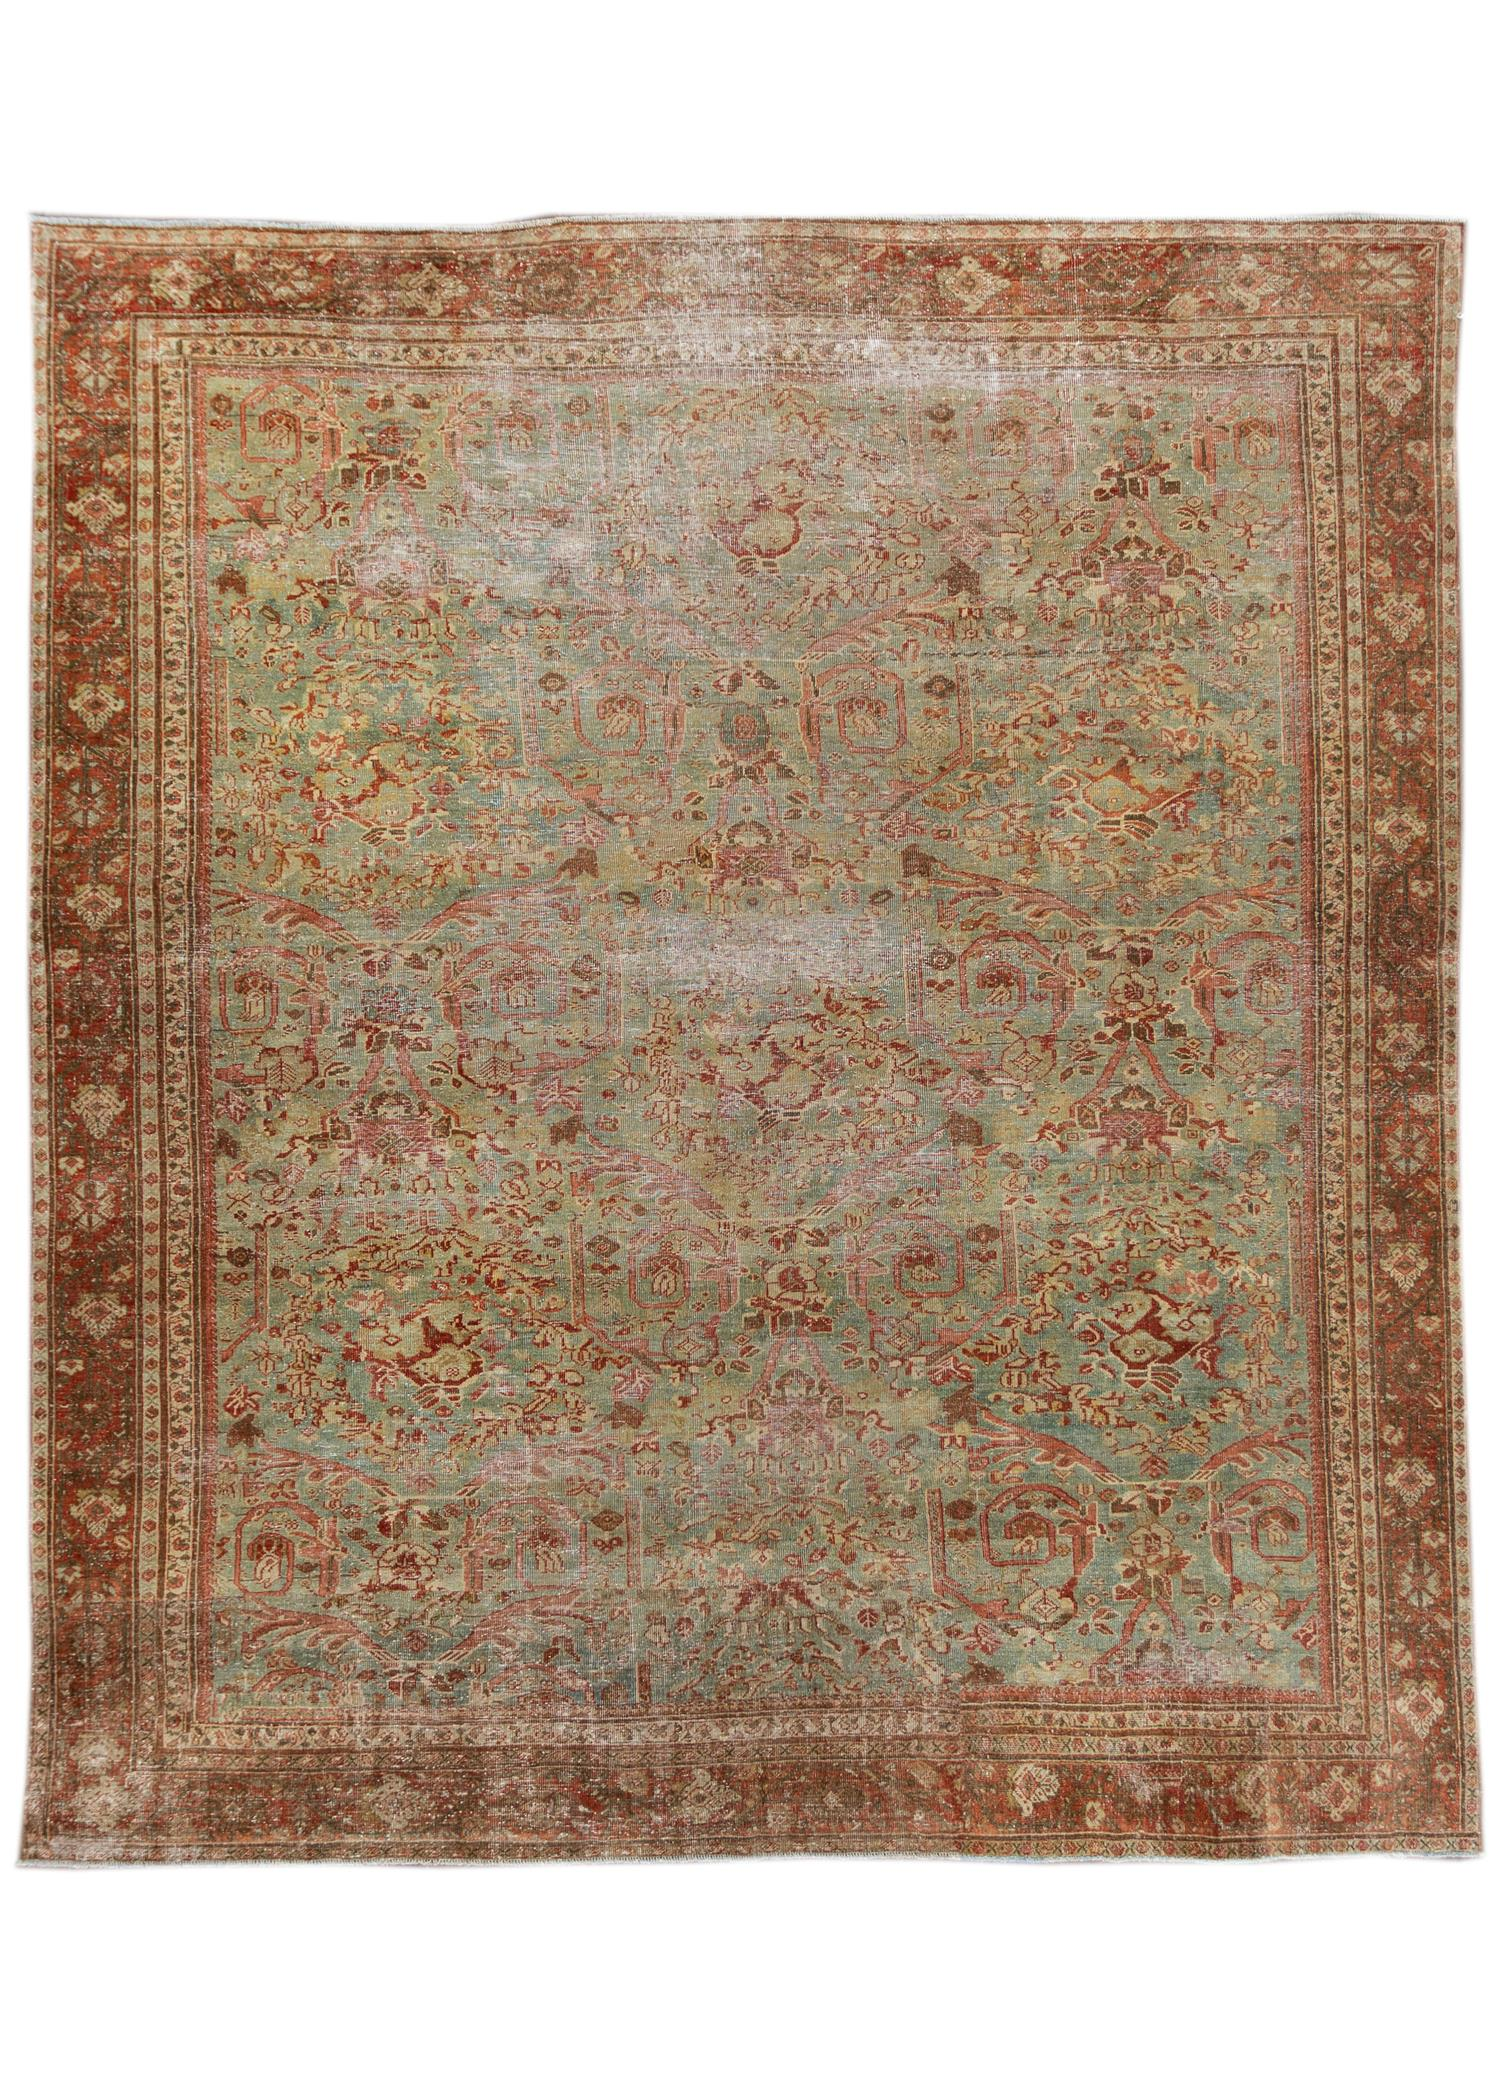 Antique Blue & Rust Malayer Wool Area Rug, 10x11